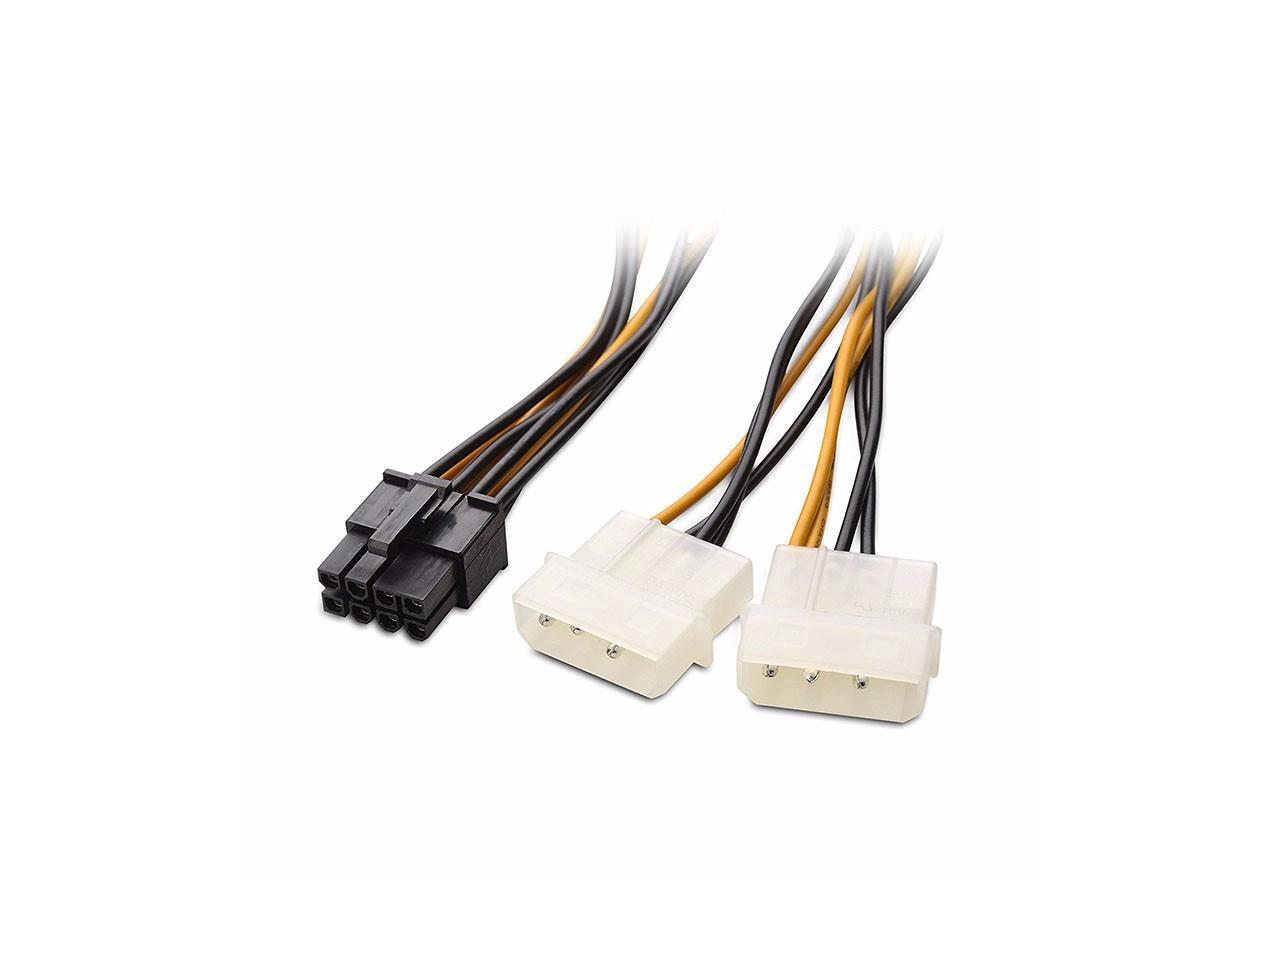 Video Graphics Card Power Cable 2 Pack 6 Pin PCI Express to Dual 4 Pin Molex LP4 Power Cable Adapter